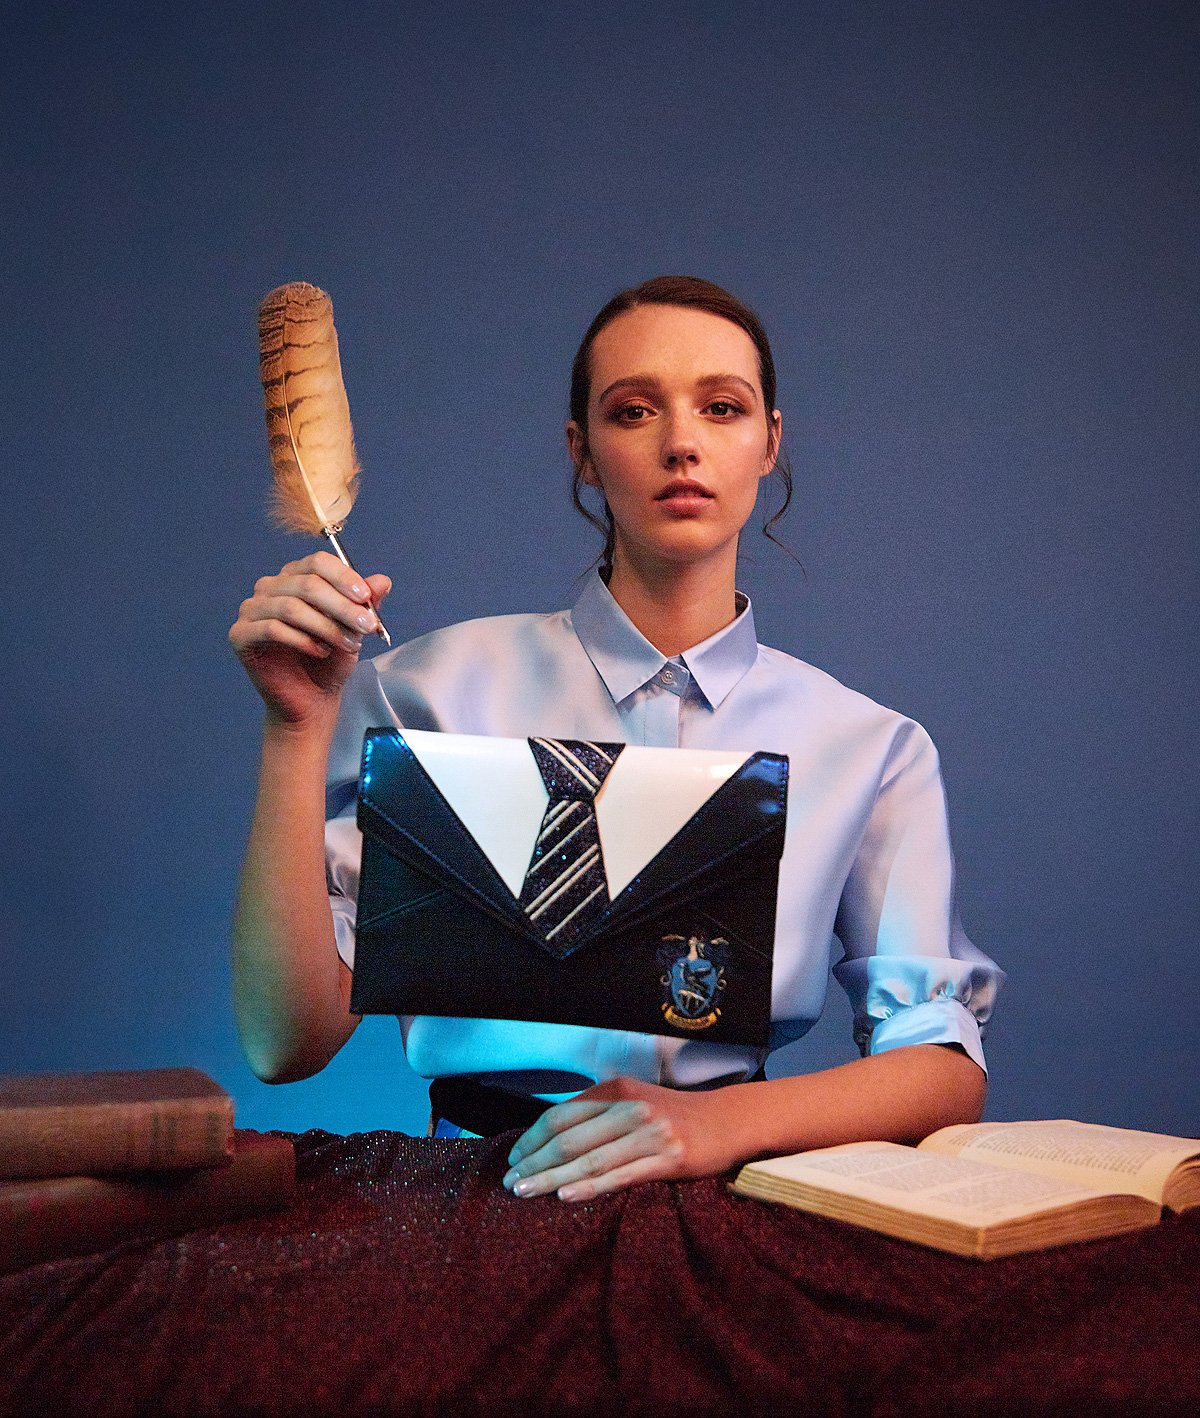 Even Rowena Ravenclaw will approve this clutch!